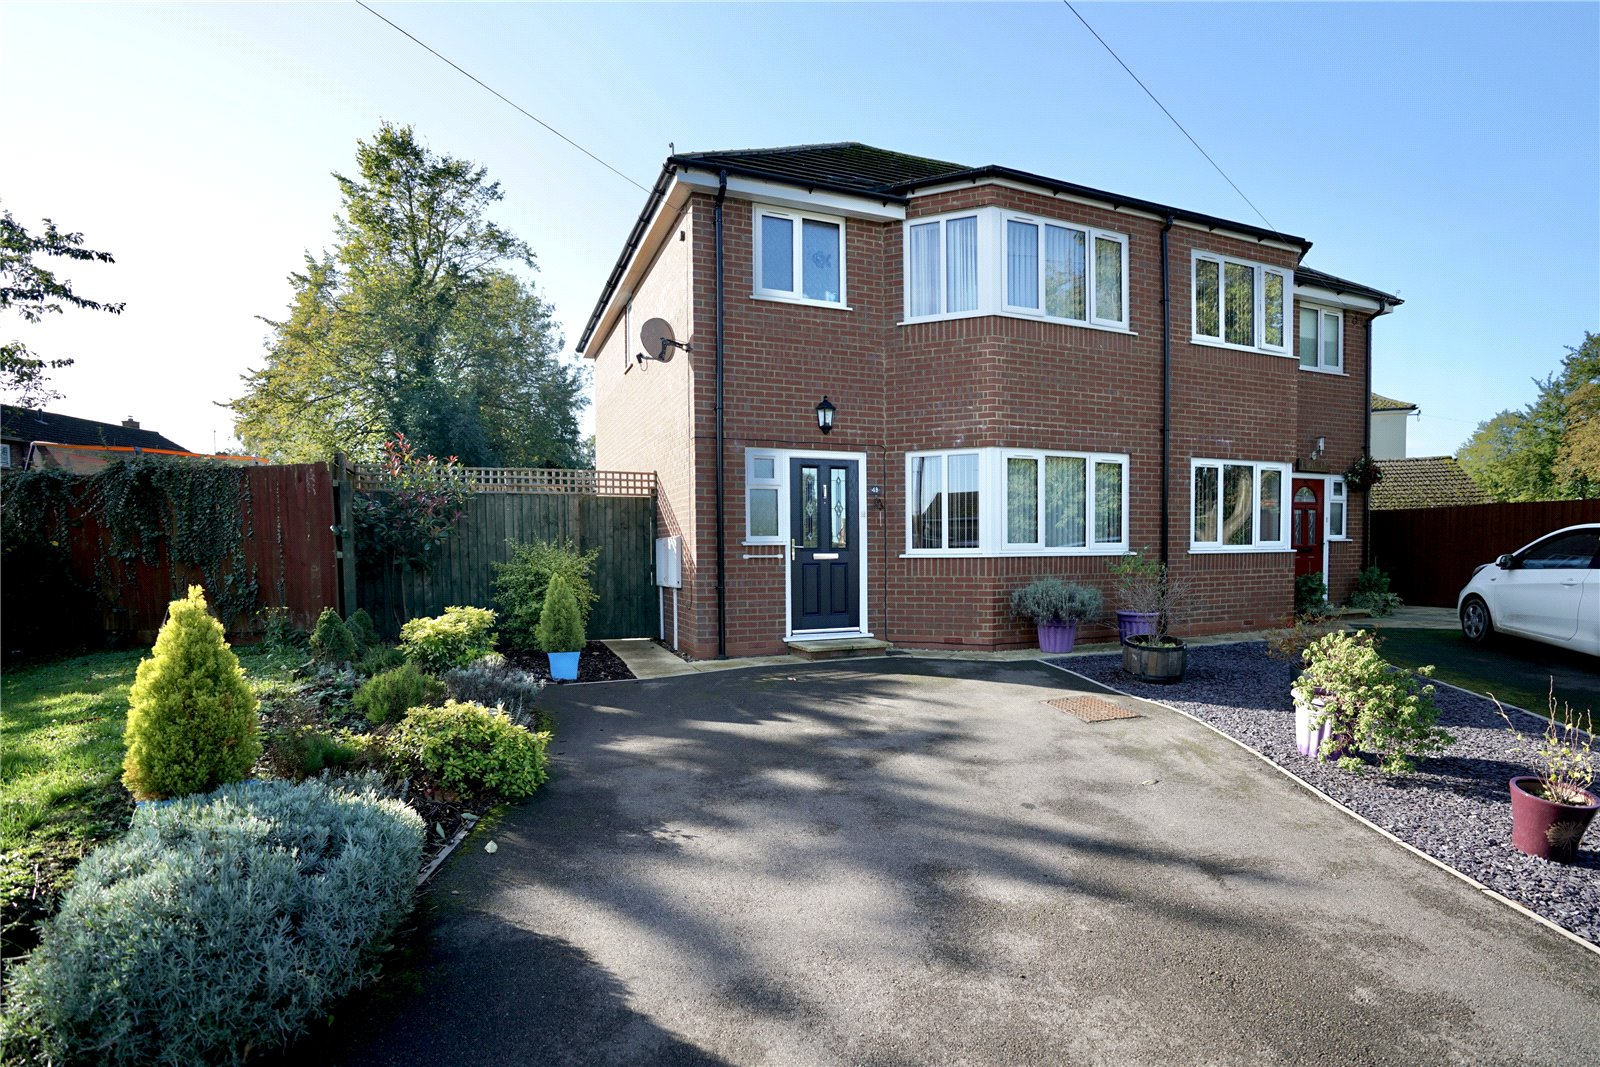 3 bed house for sale in Higham Ferrers, NN10